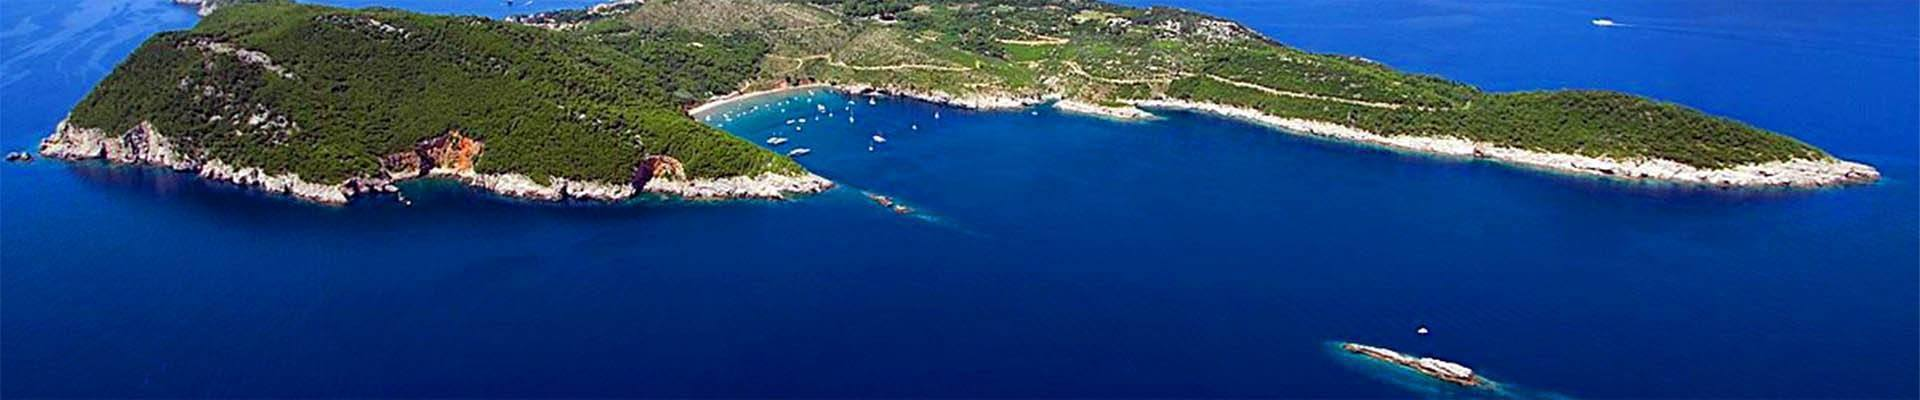 Elaphite islands boat trip from Dubrovnik